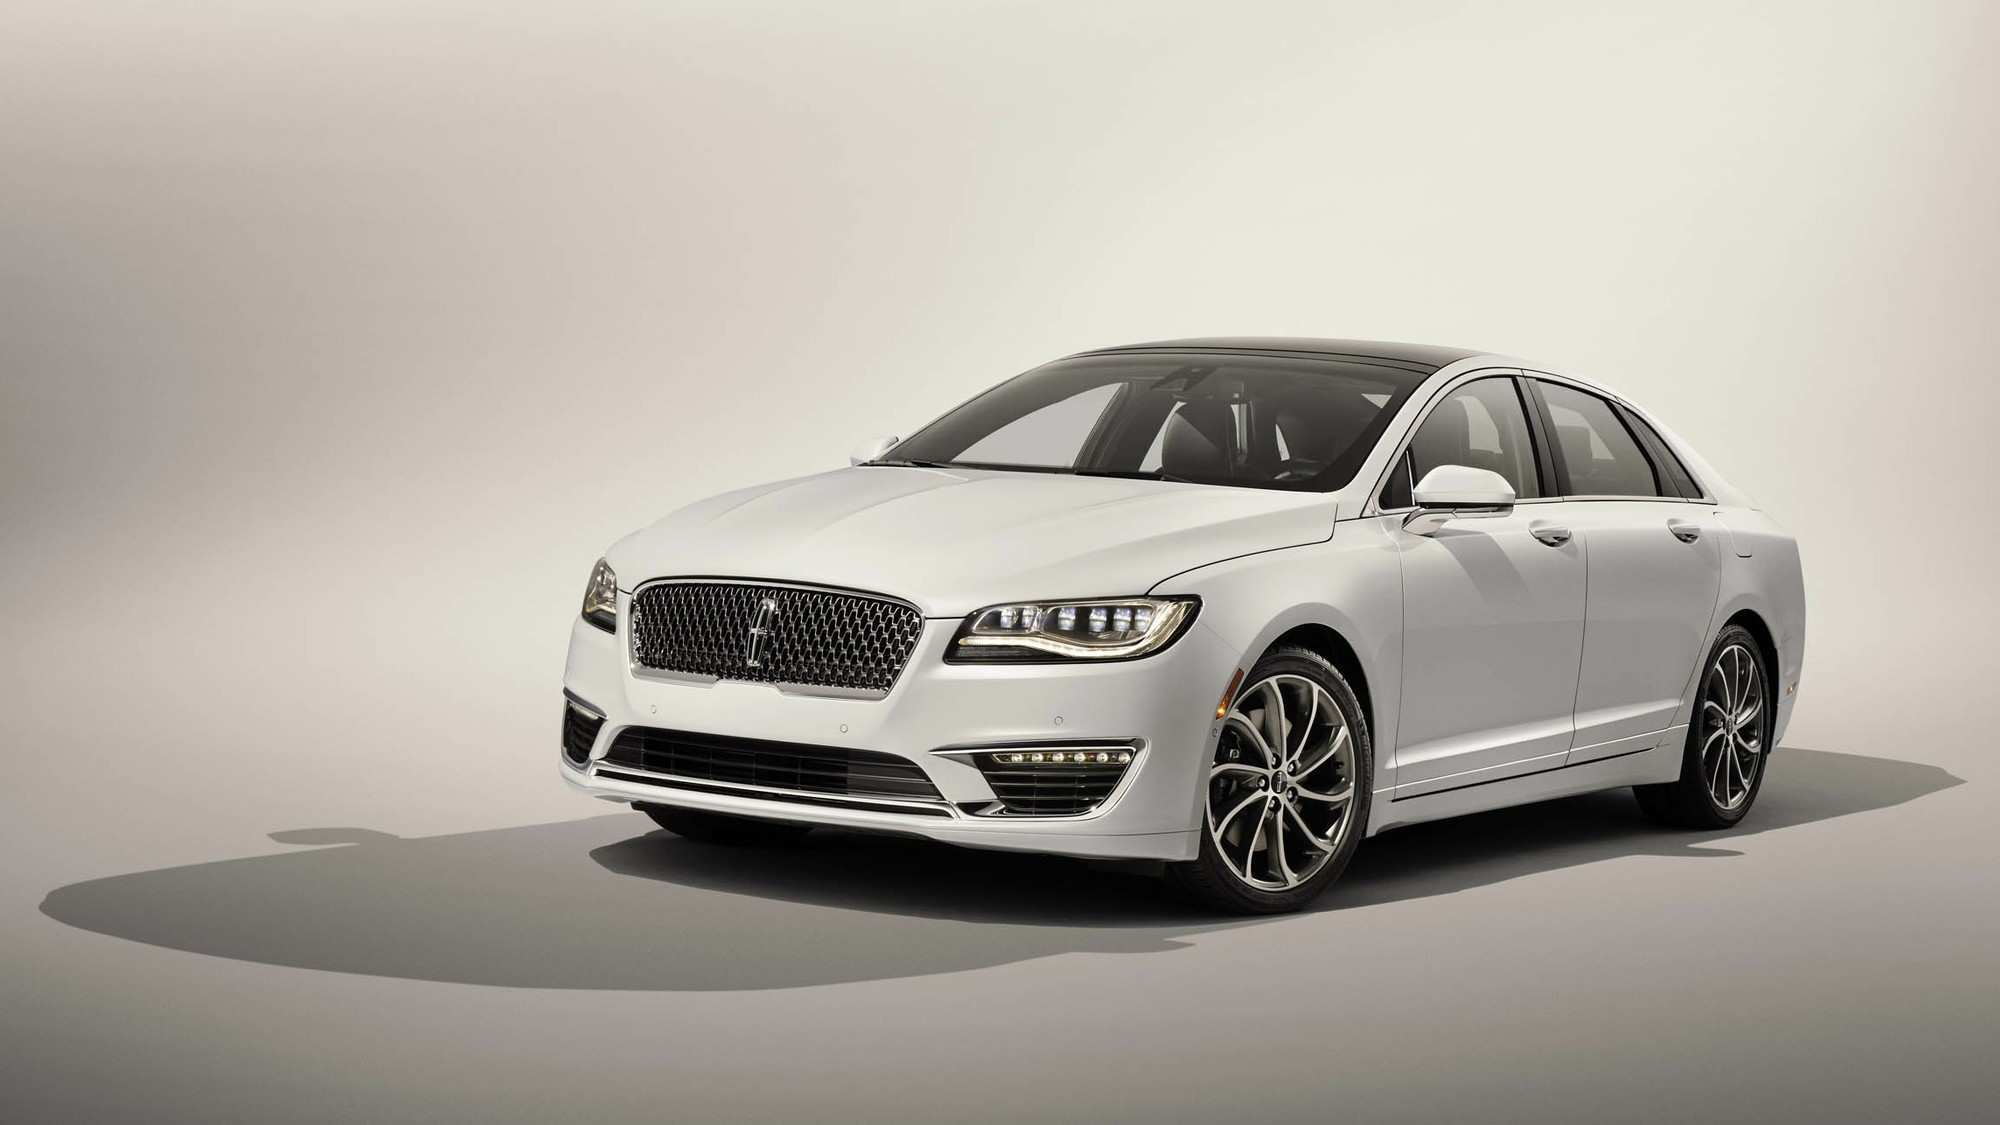 95 New Spy Shots Lincoln Mkz Sedan Interior